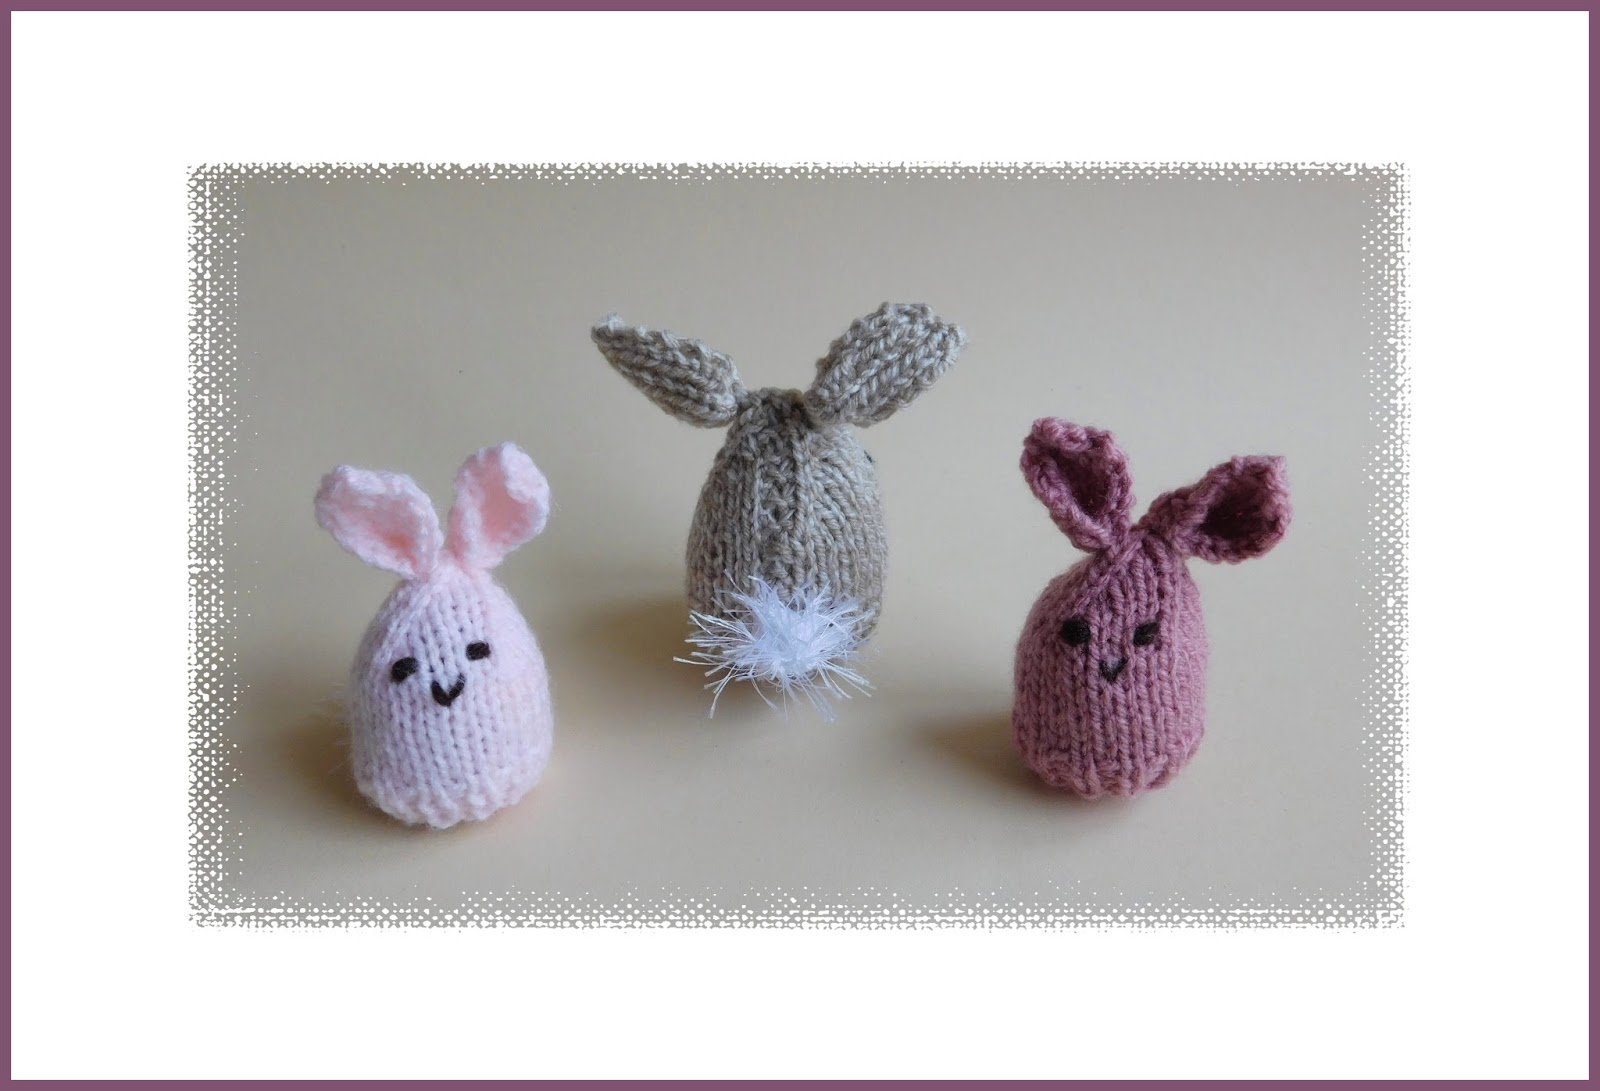 Easter Egg Cosy Knitting Pattern : mariannas lazy daisy days: Easter Bunny Egg Cosy